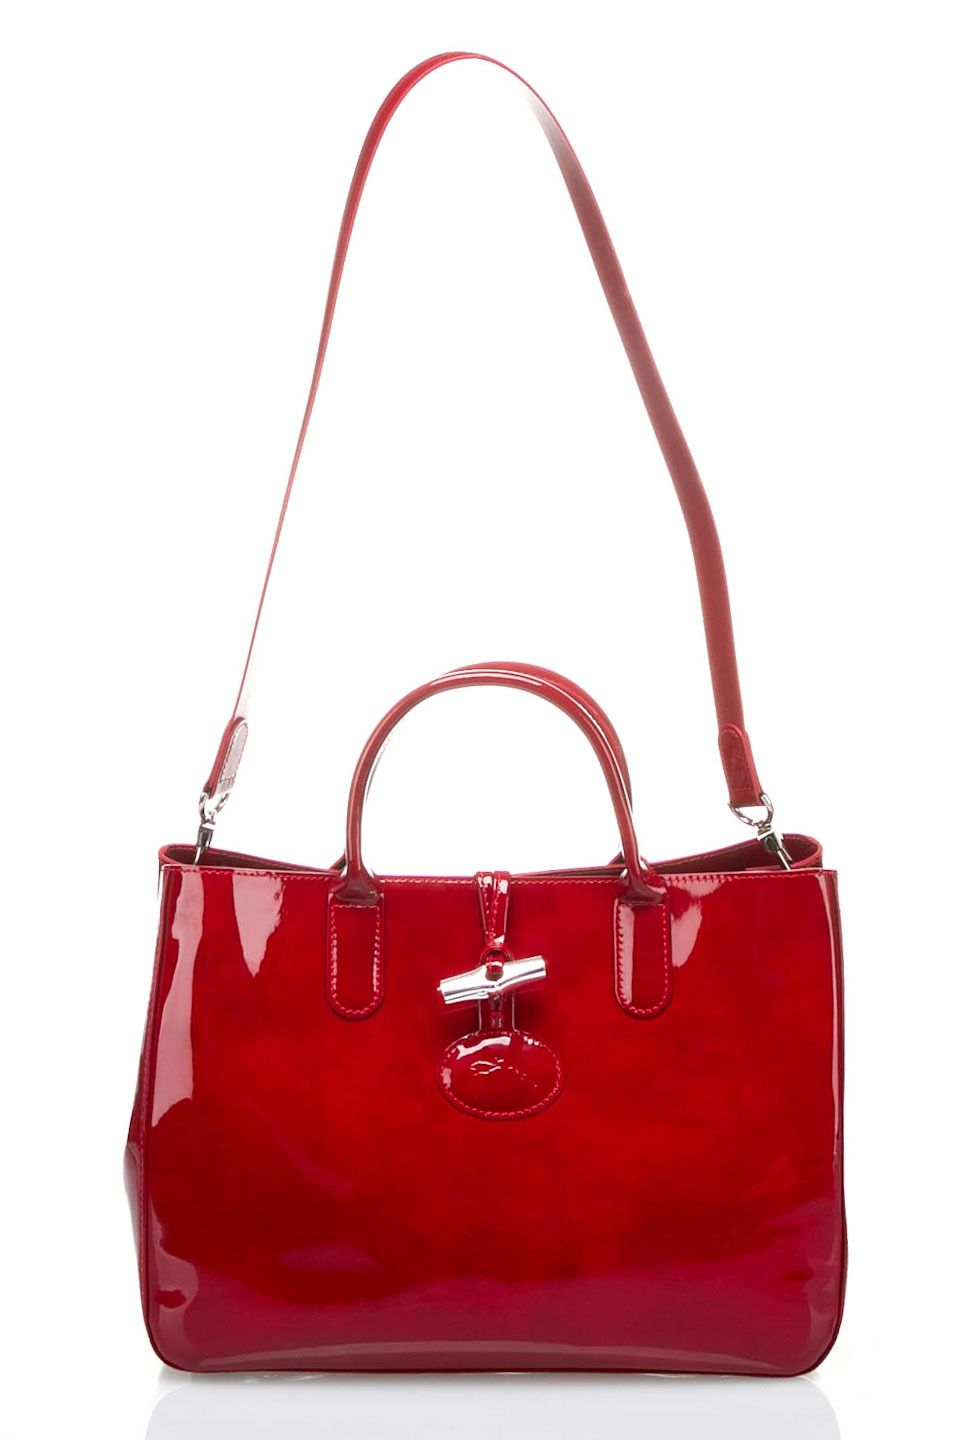 Longchamp Roseau Box Tote Bag in Carmine - Beyond the Rack! #baglove